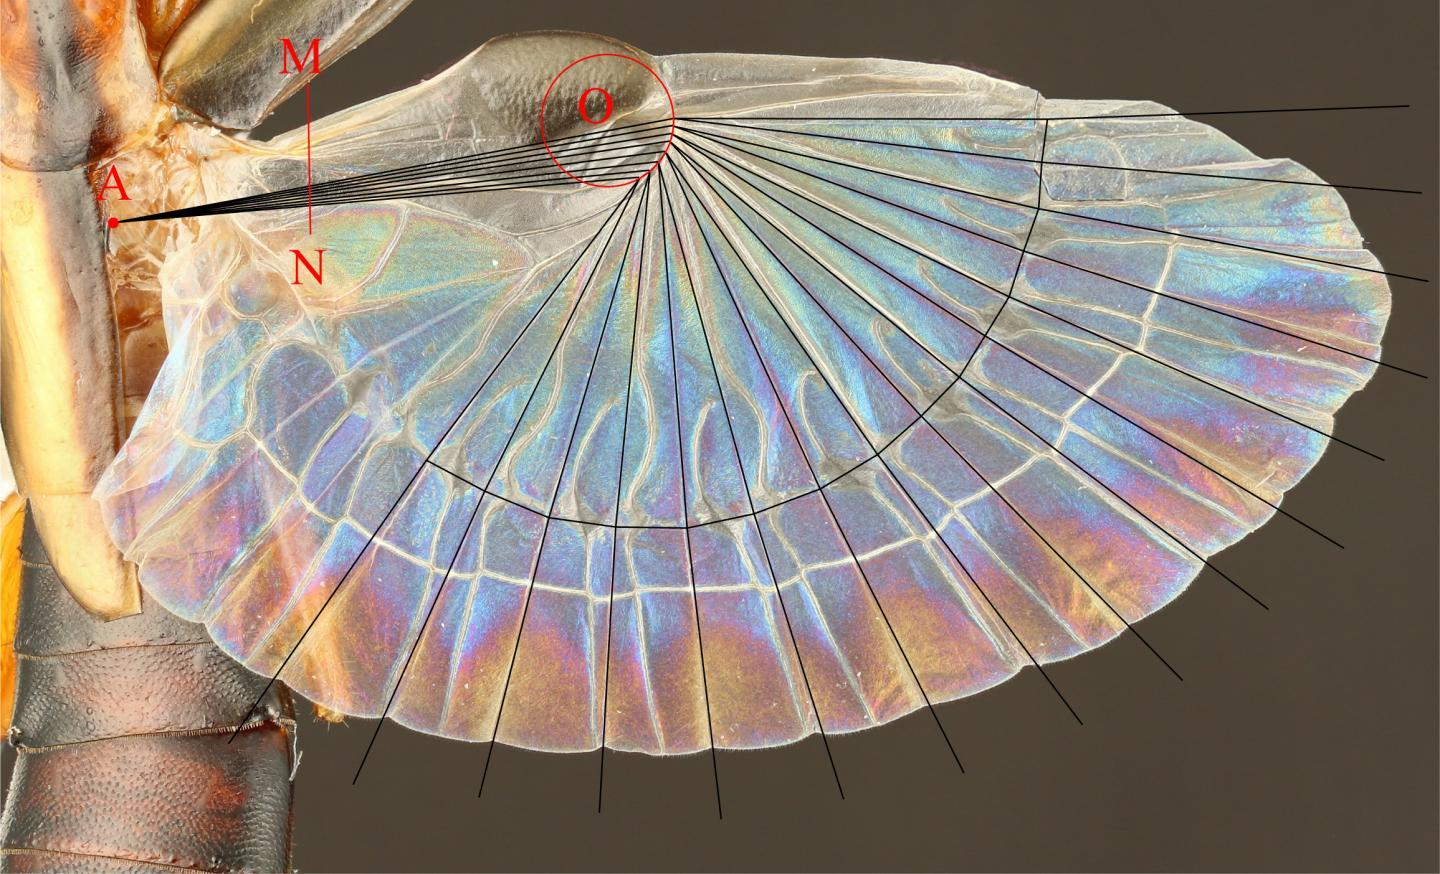 An earwig's extended hind wing, with the folding pattern overlaid on top